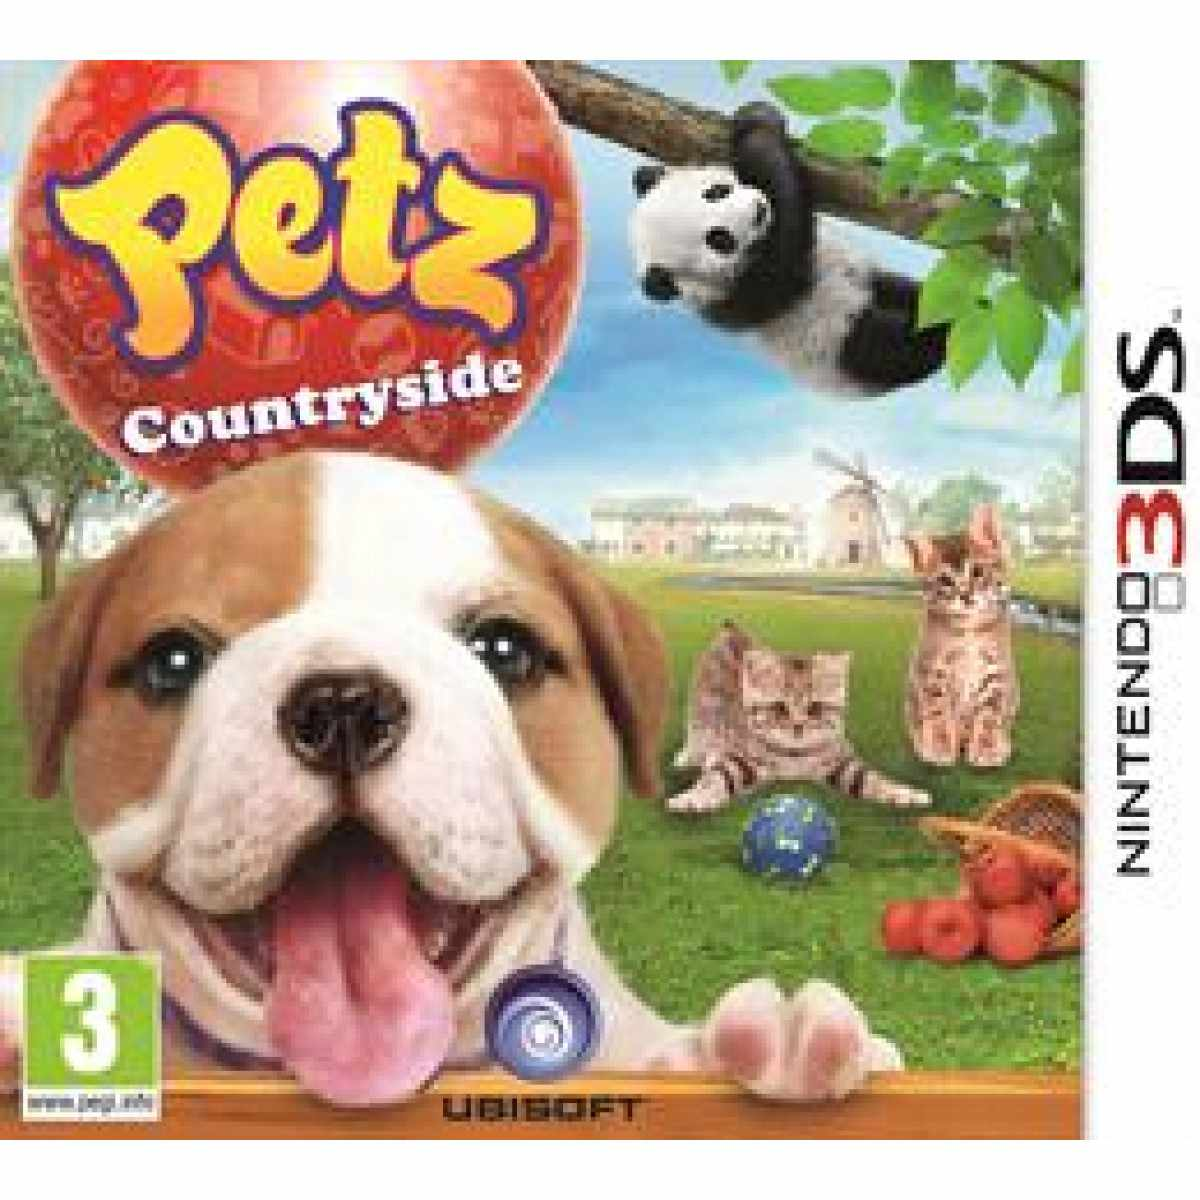 Ver Petz Countryside Animalz Aventuras Camperas 3Ds